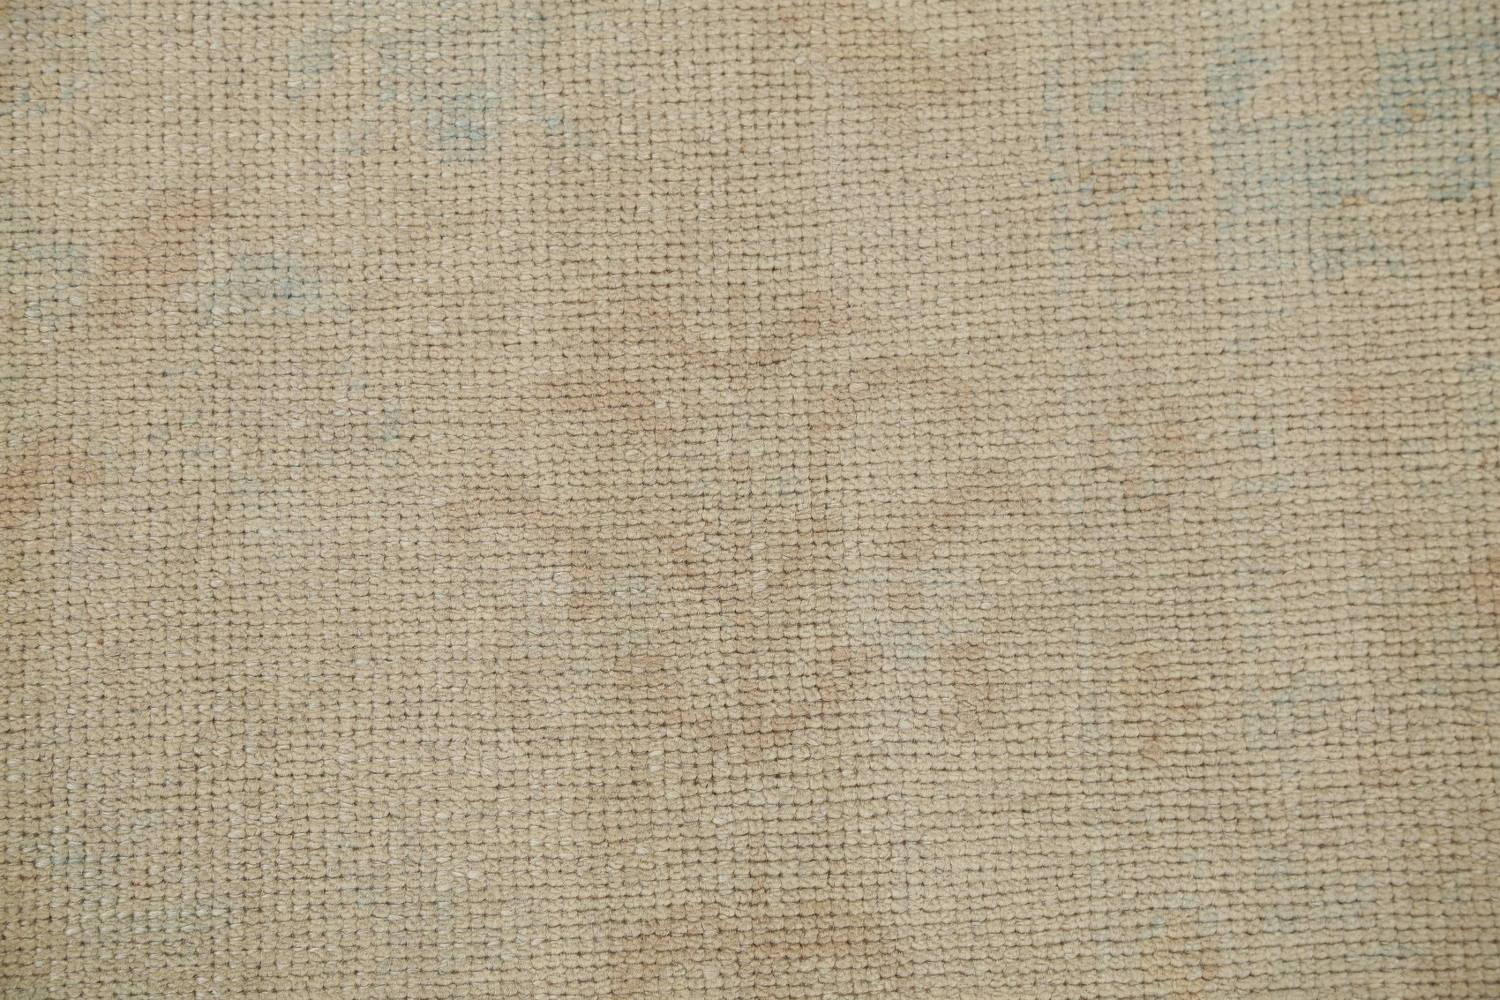 Vegetable Dye Muted Gold Oushak Turkish Hand-Knotted Runner Rug 6x15 image 8